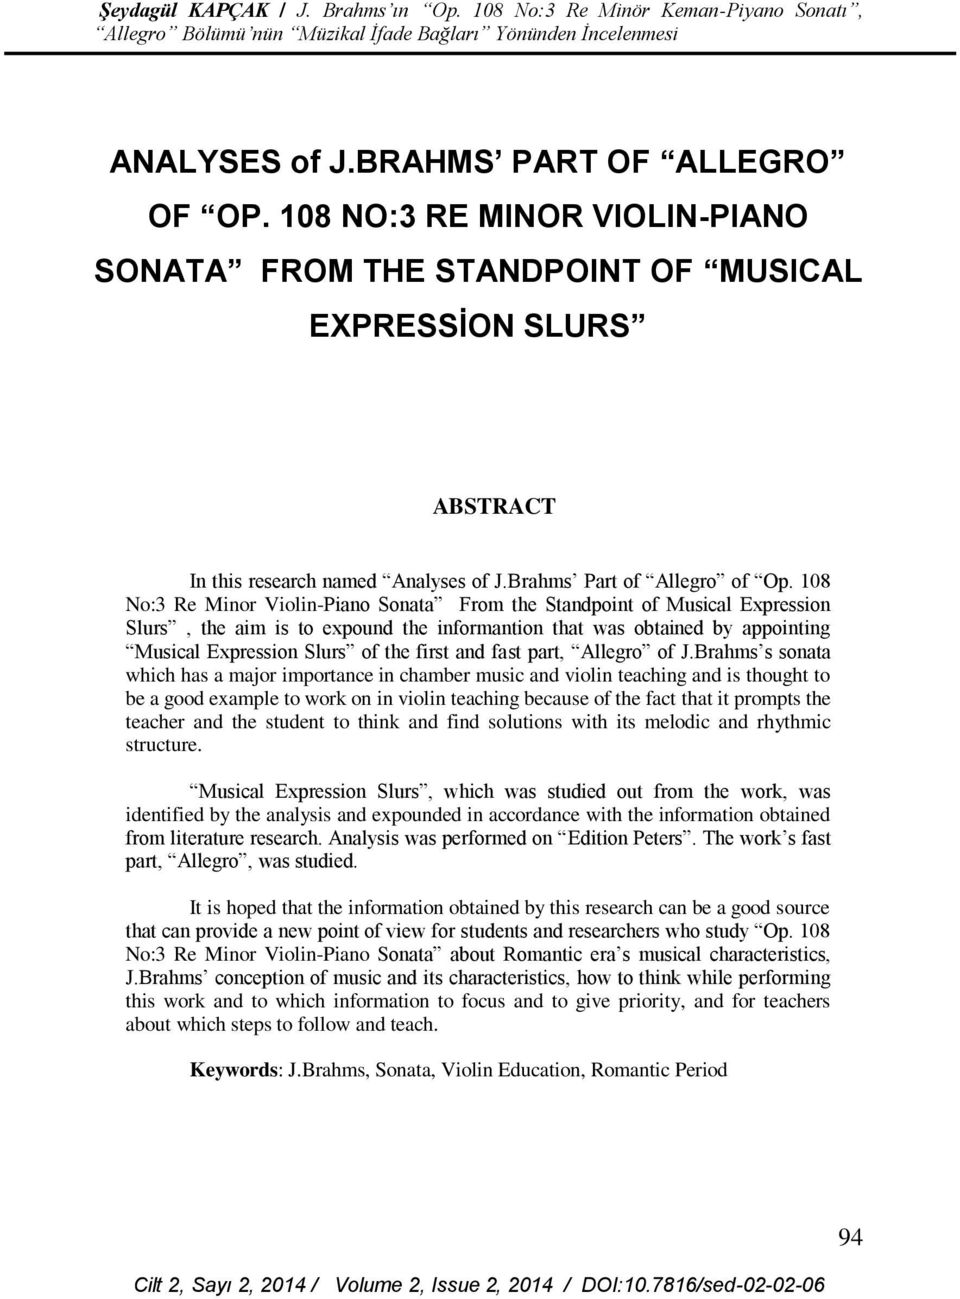 108 No:3 Re Minor Violin-Piano Sonata From the Standpoint of Musical Expression Slurs, the aim is to expound the informantion that was obtained by appointing Musical Expression Slurs of the first and